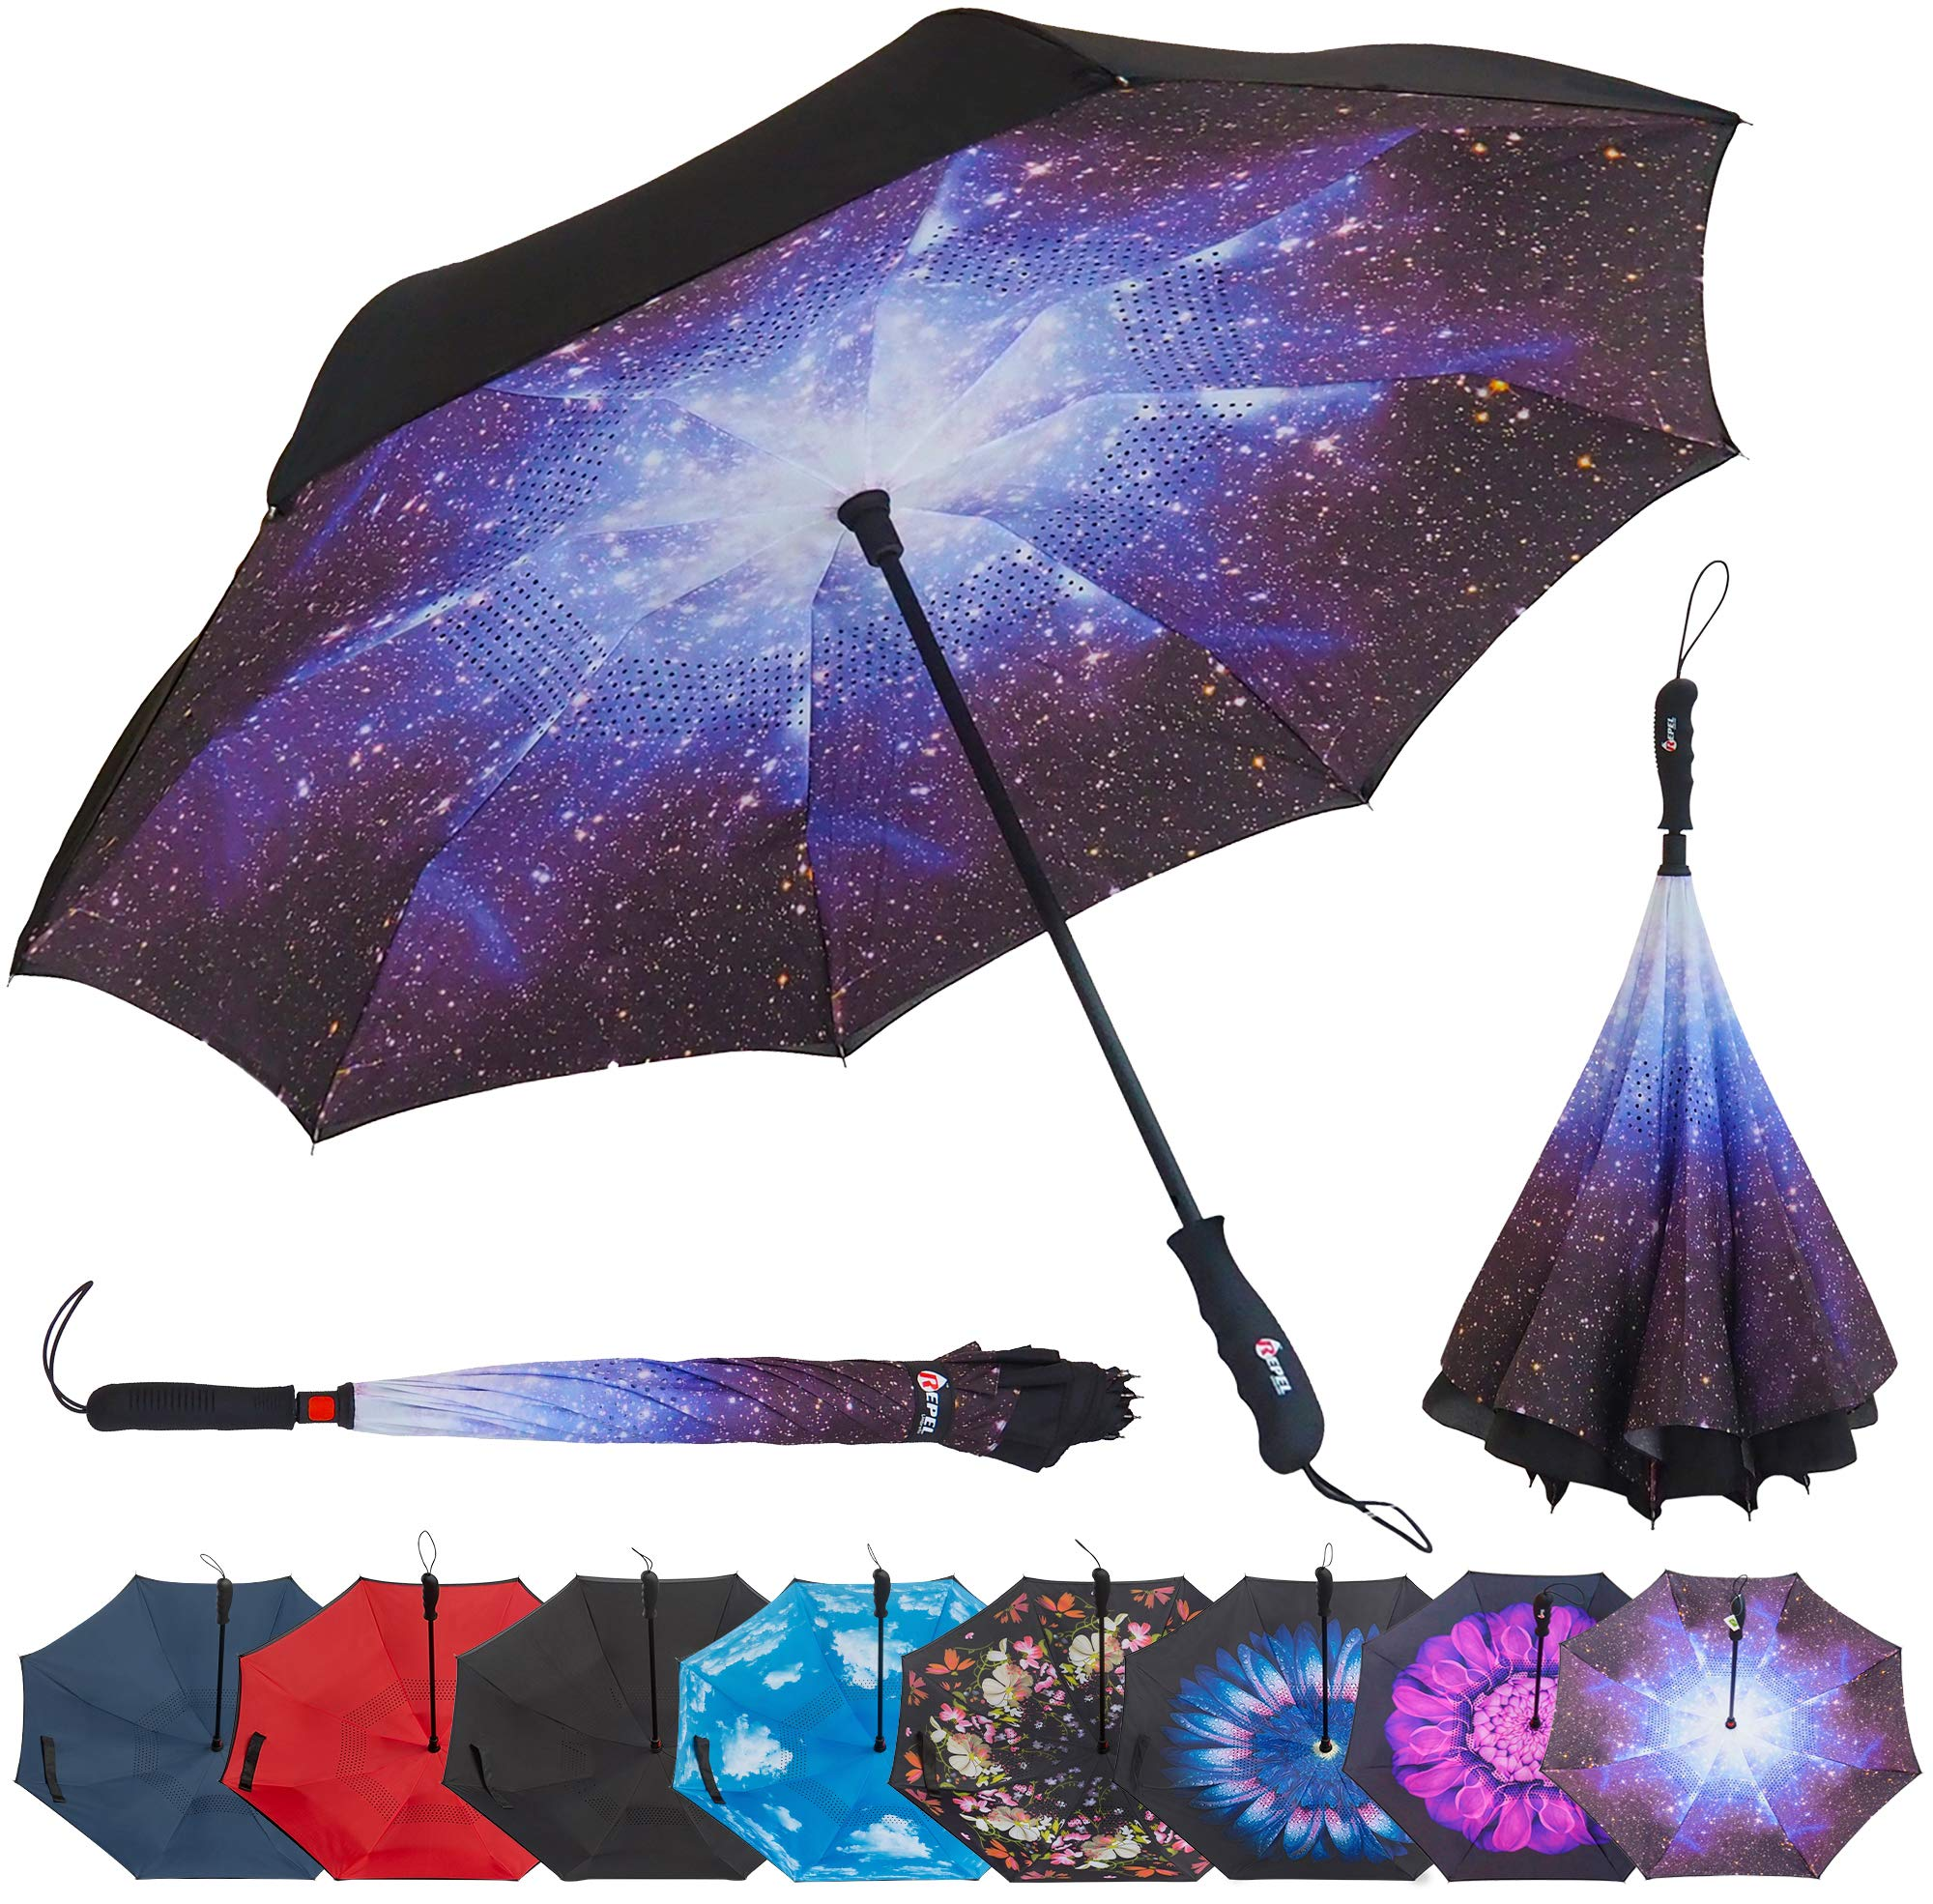 Repel Reverse Folding Inverted Umbrella with 2 Layered Teflon Canopy with Reinforced Fiberglass Ribs (Starry Night) by Repel Umbrella